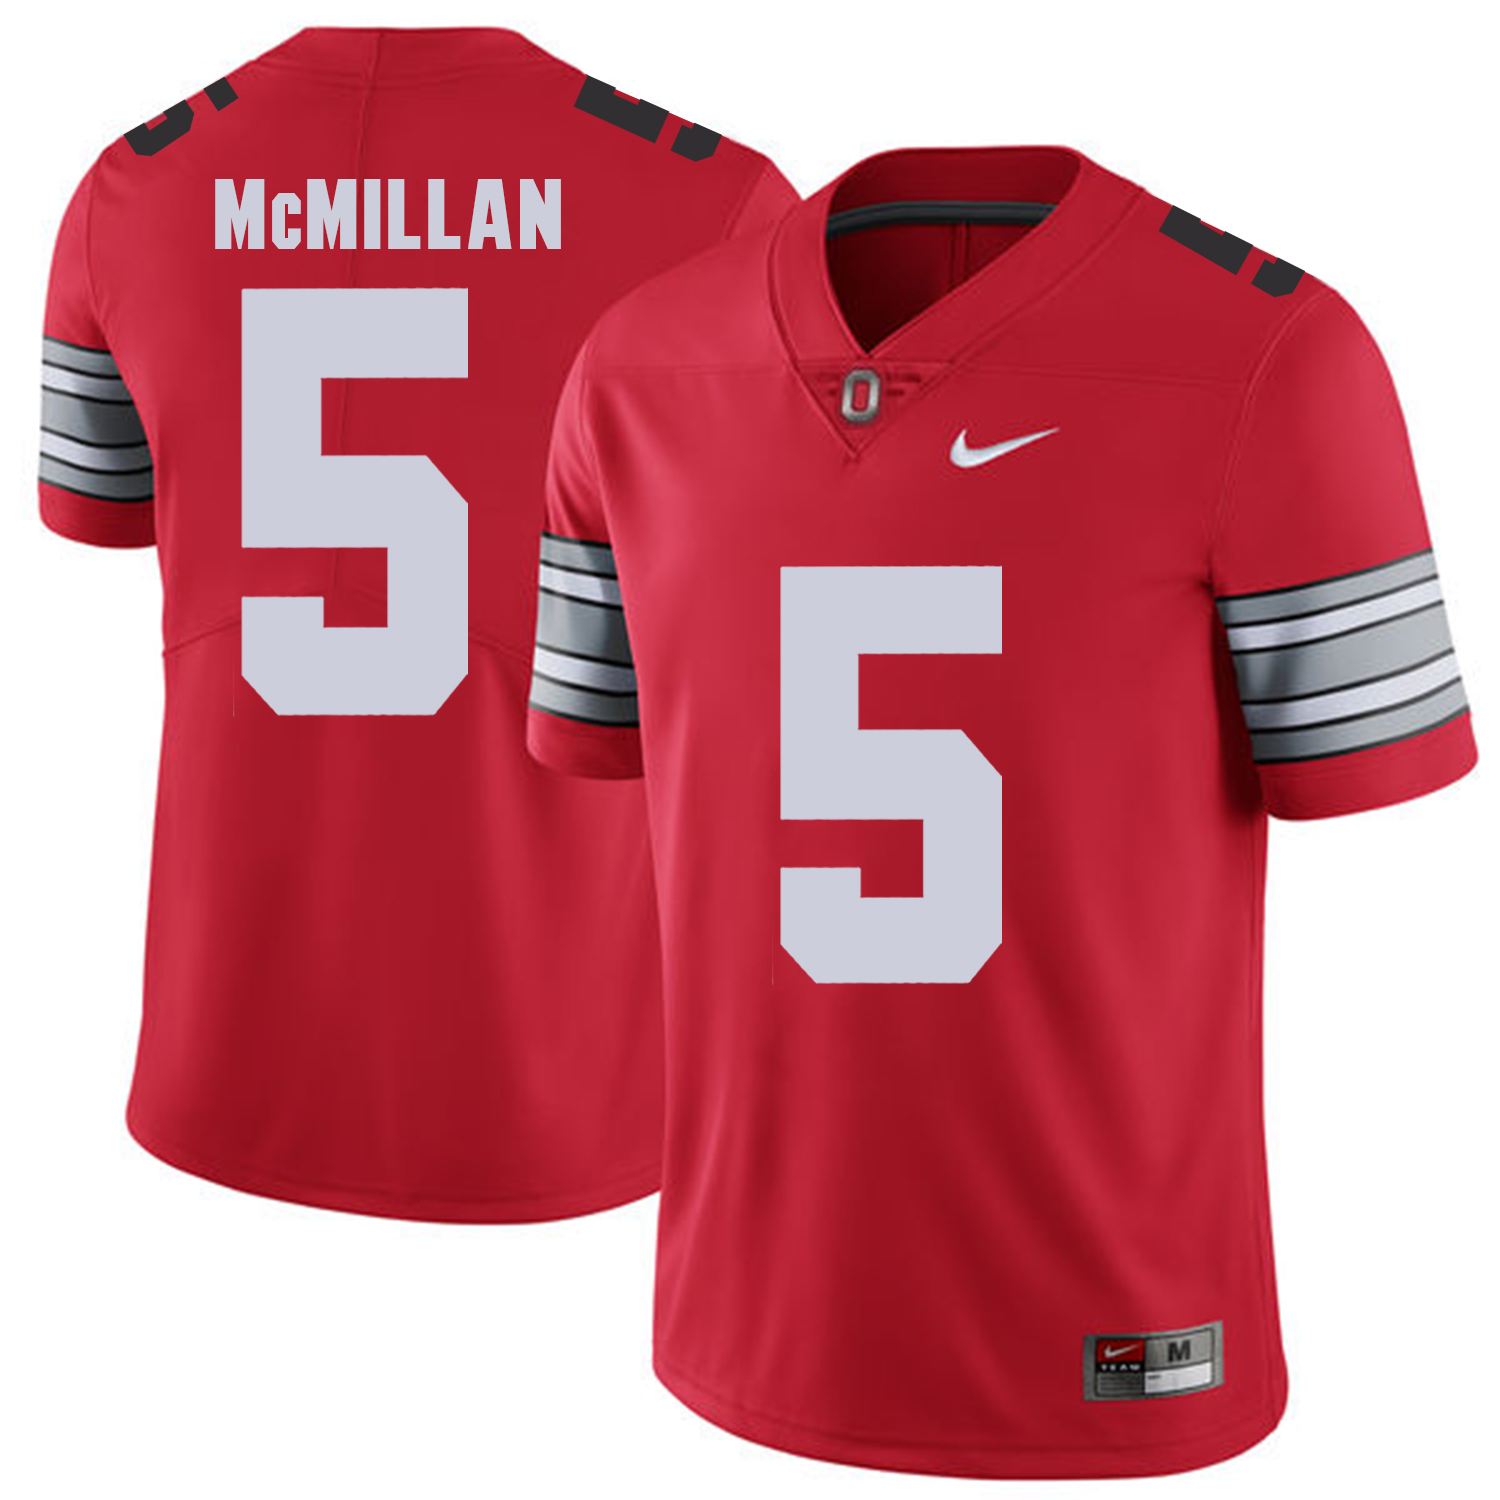 Ohio State Buckeyes 5 Raekwon McMillan Red 2018 Spring Game College Football Limited Jersey